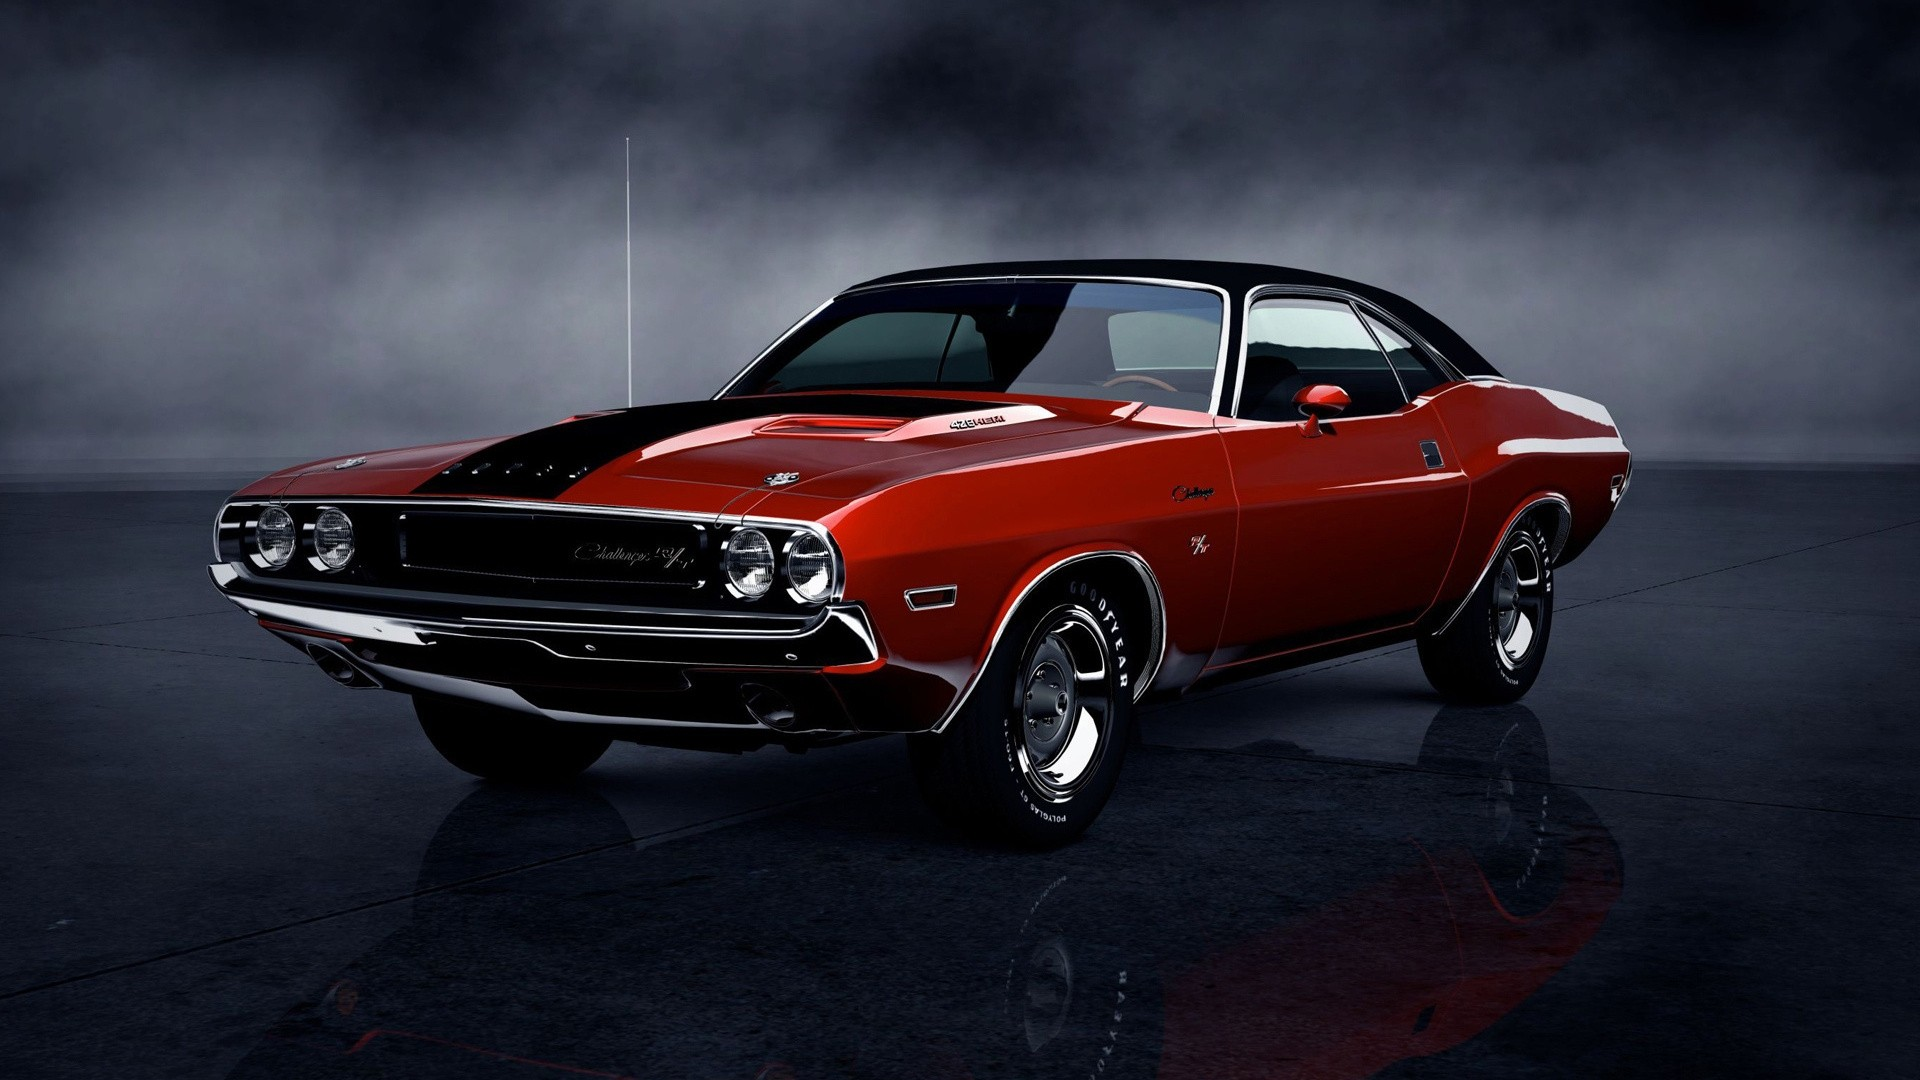 Dodge Charger Wallpaper Download Full